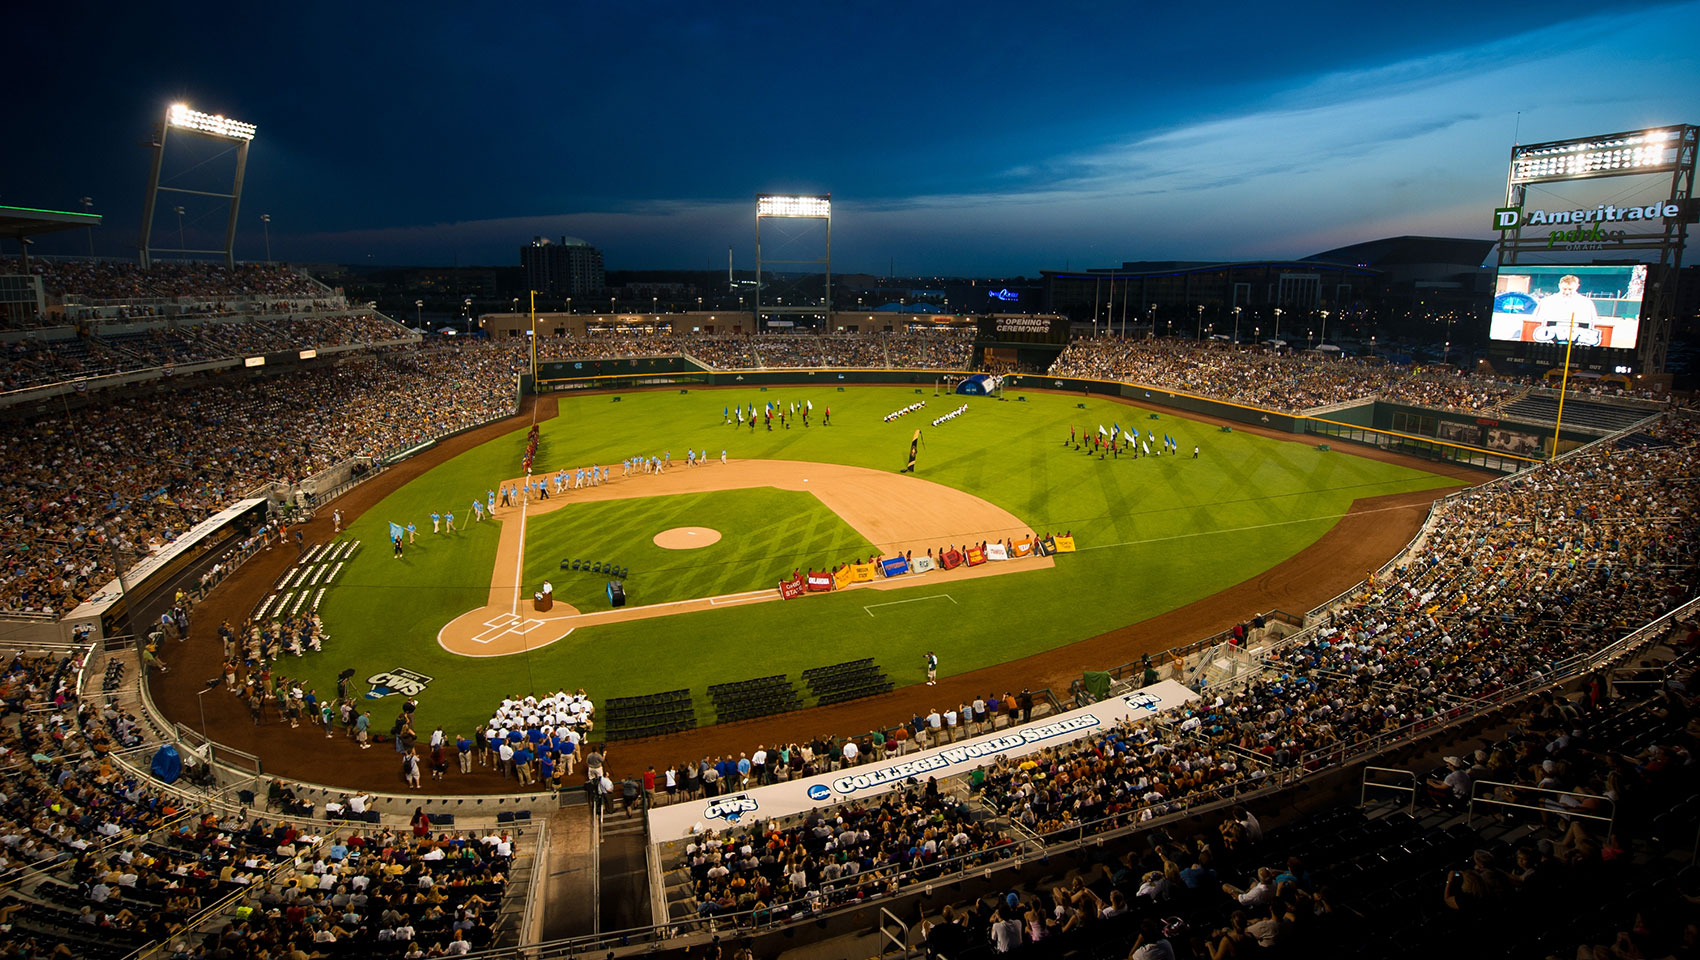 baseball stadium at dusk with teams on the field